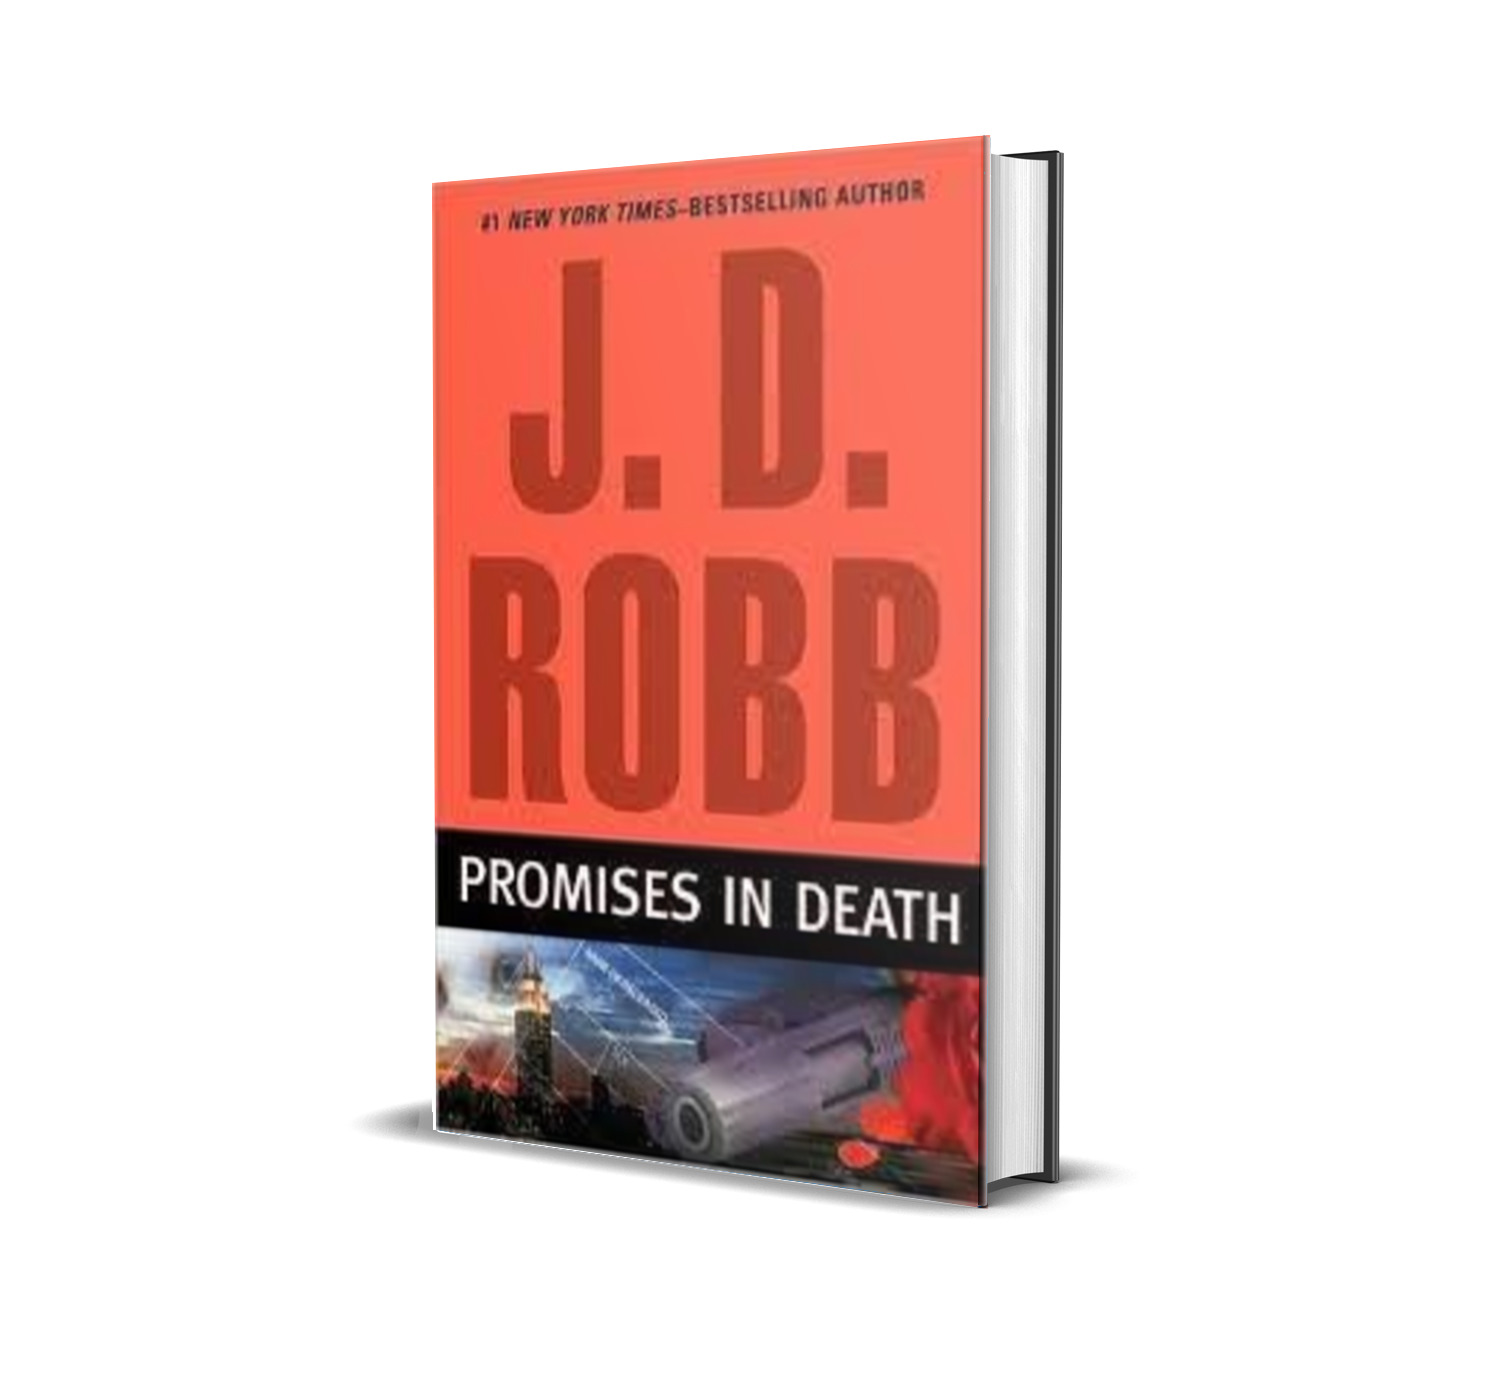 PROMISES IN DEATH NORA ROBERTS